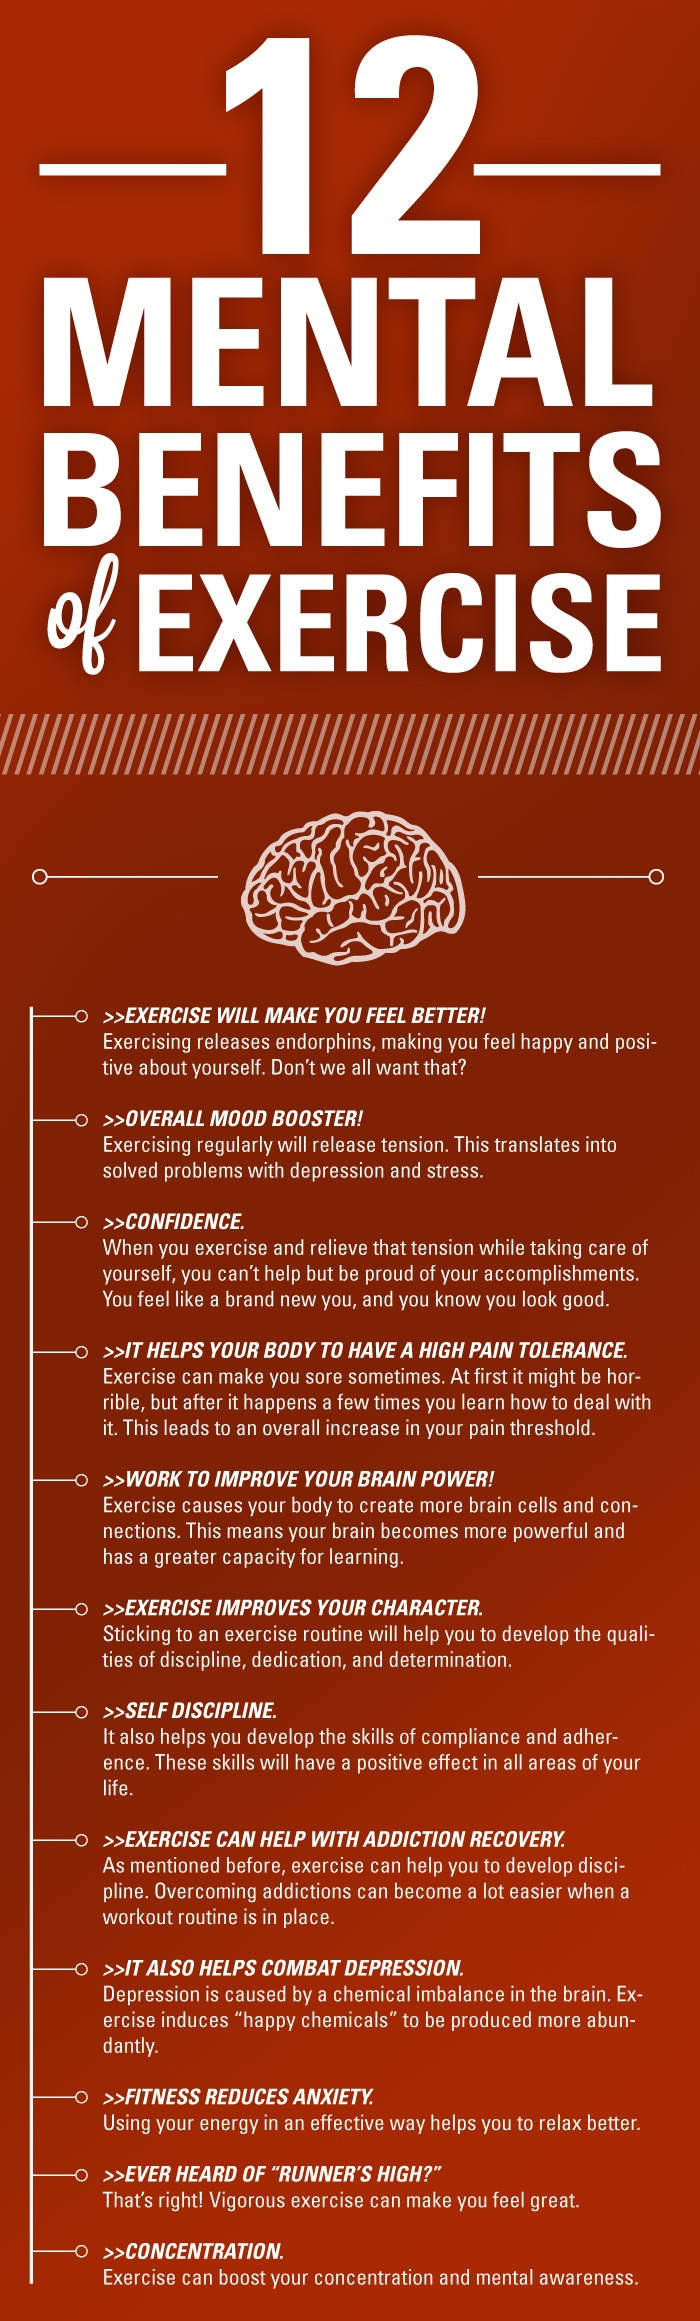 12 Mental Benefits You Can Get From Exercise Infographic